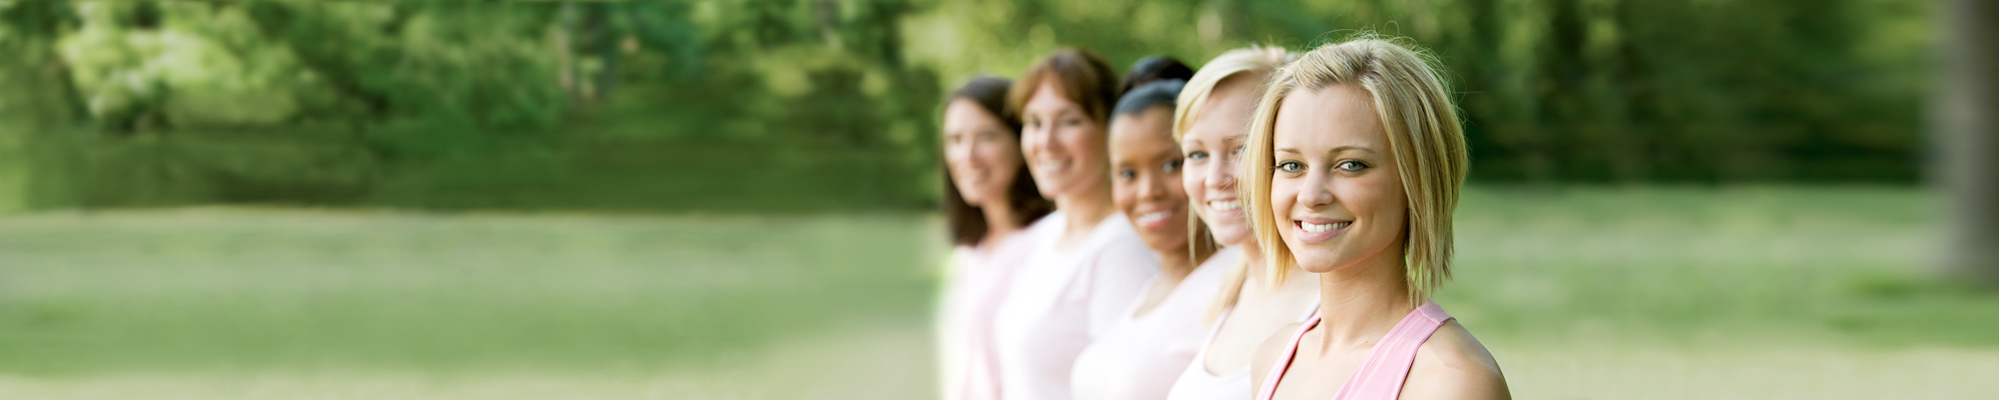 Obgyn East Norriton Womens Health Care